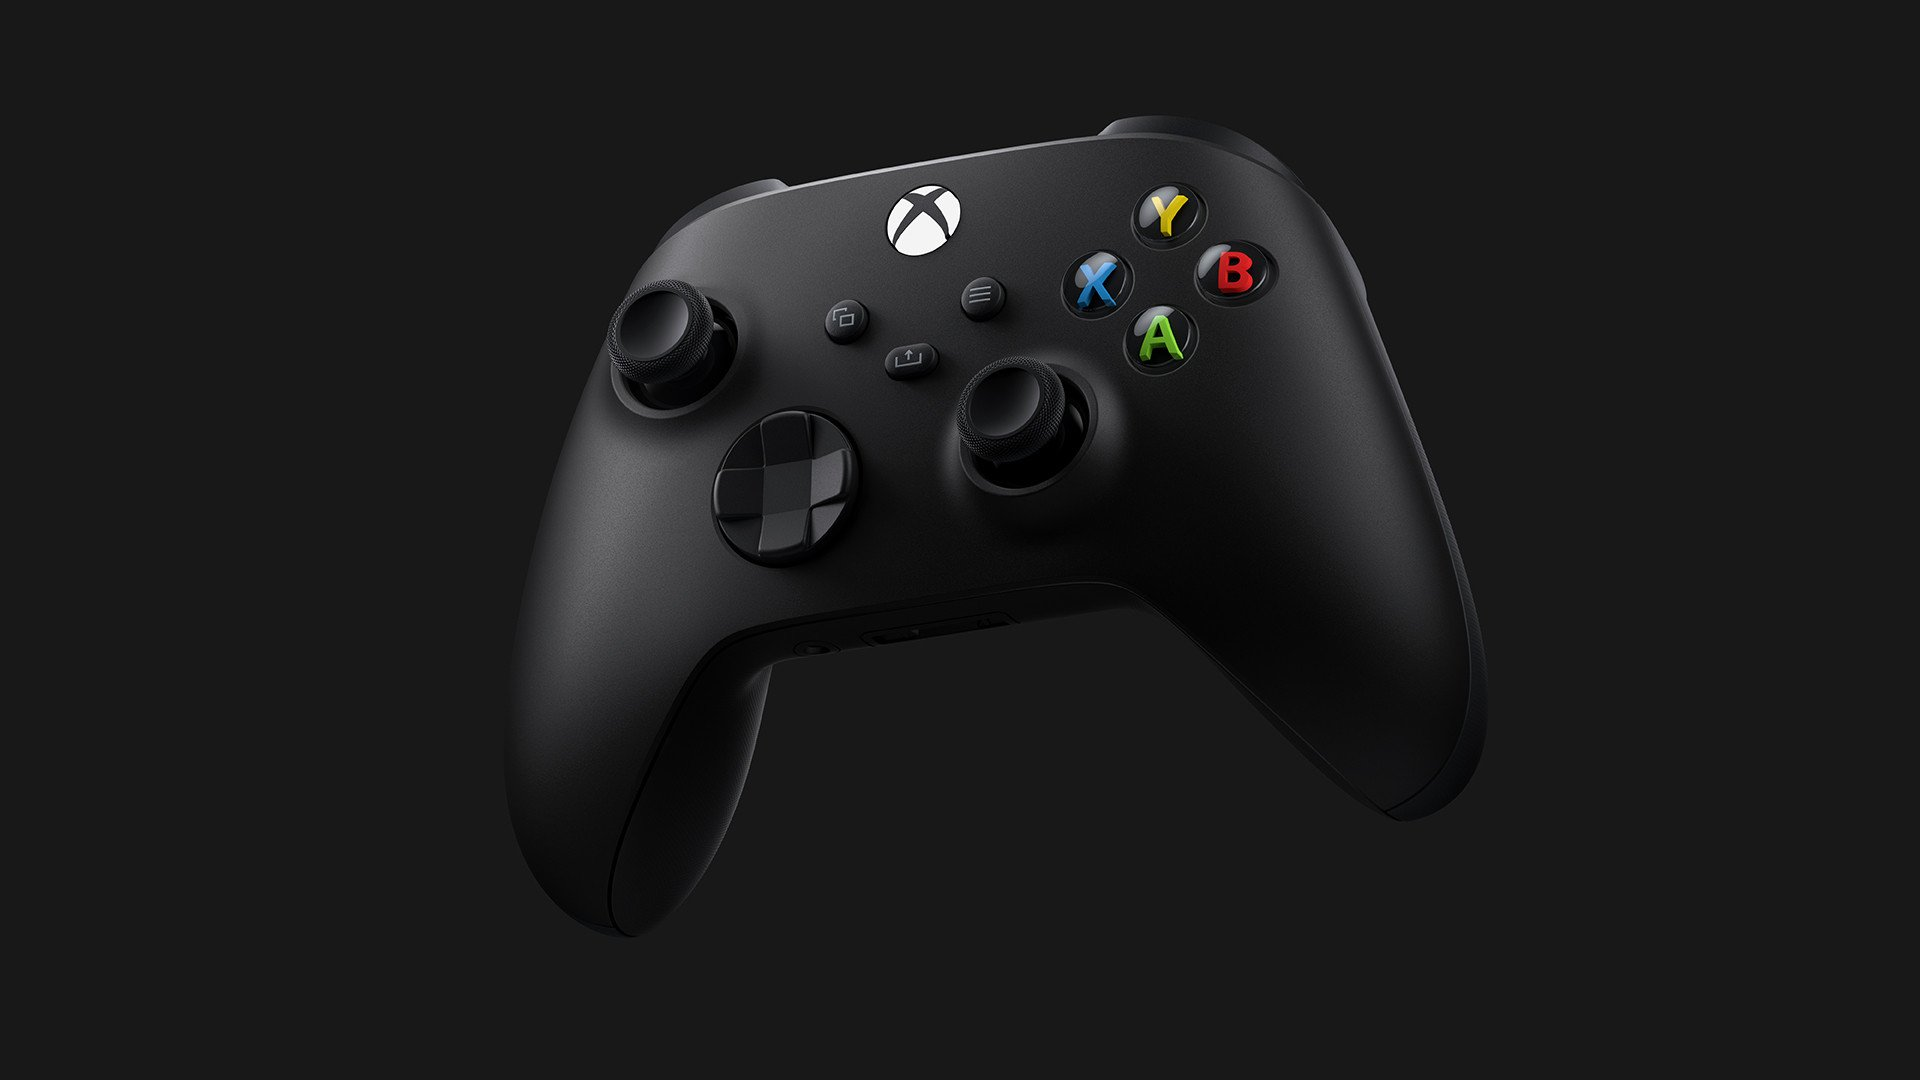 Xbox revamped its sharing feature so that it's much easier to, you know, share content screenshot